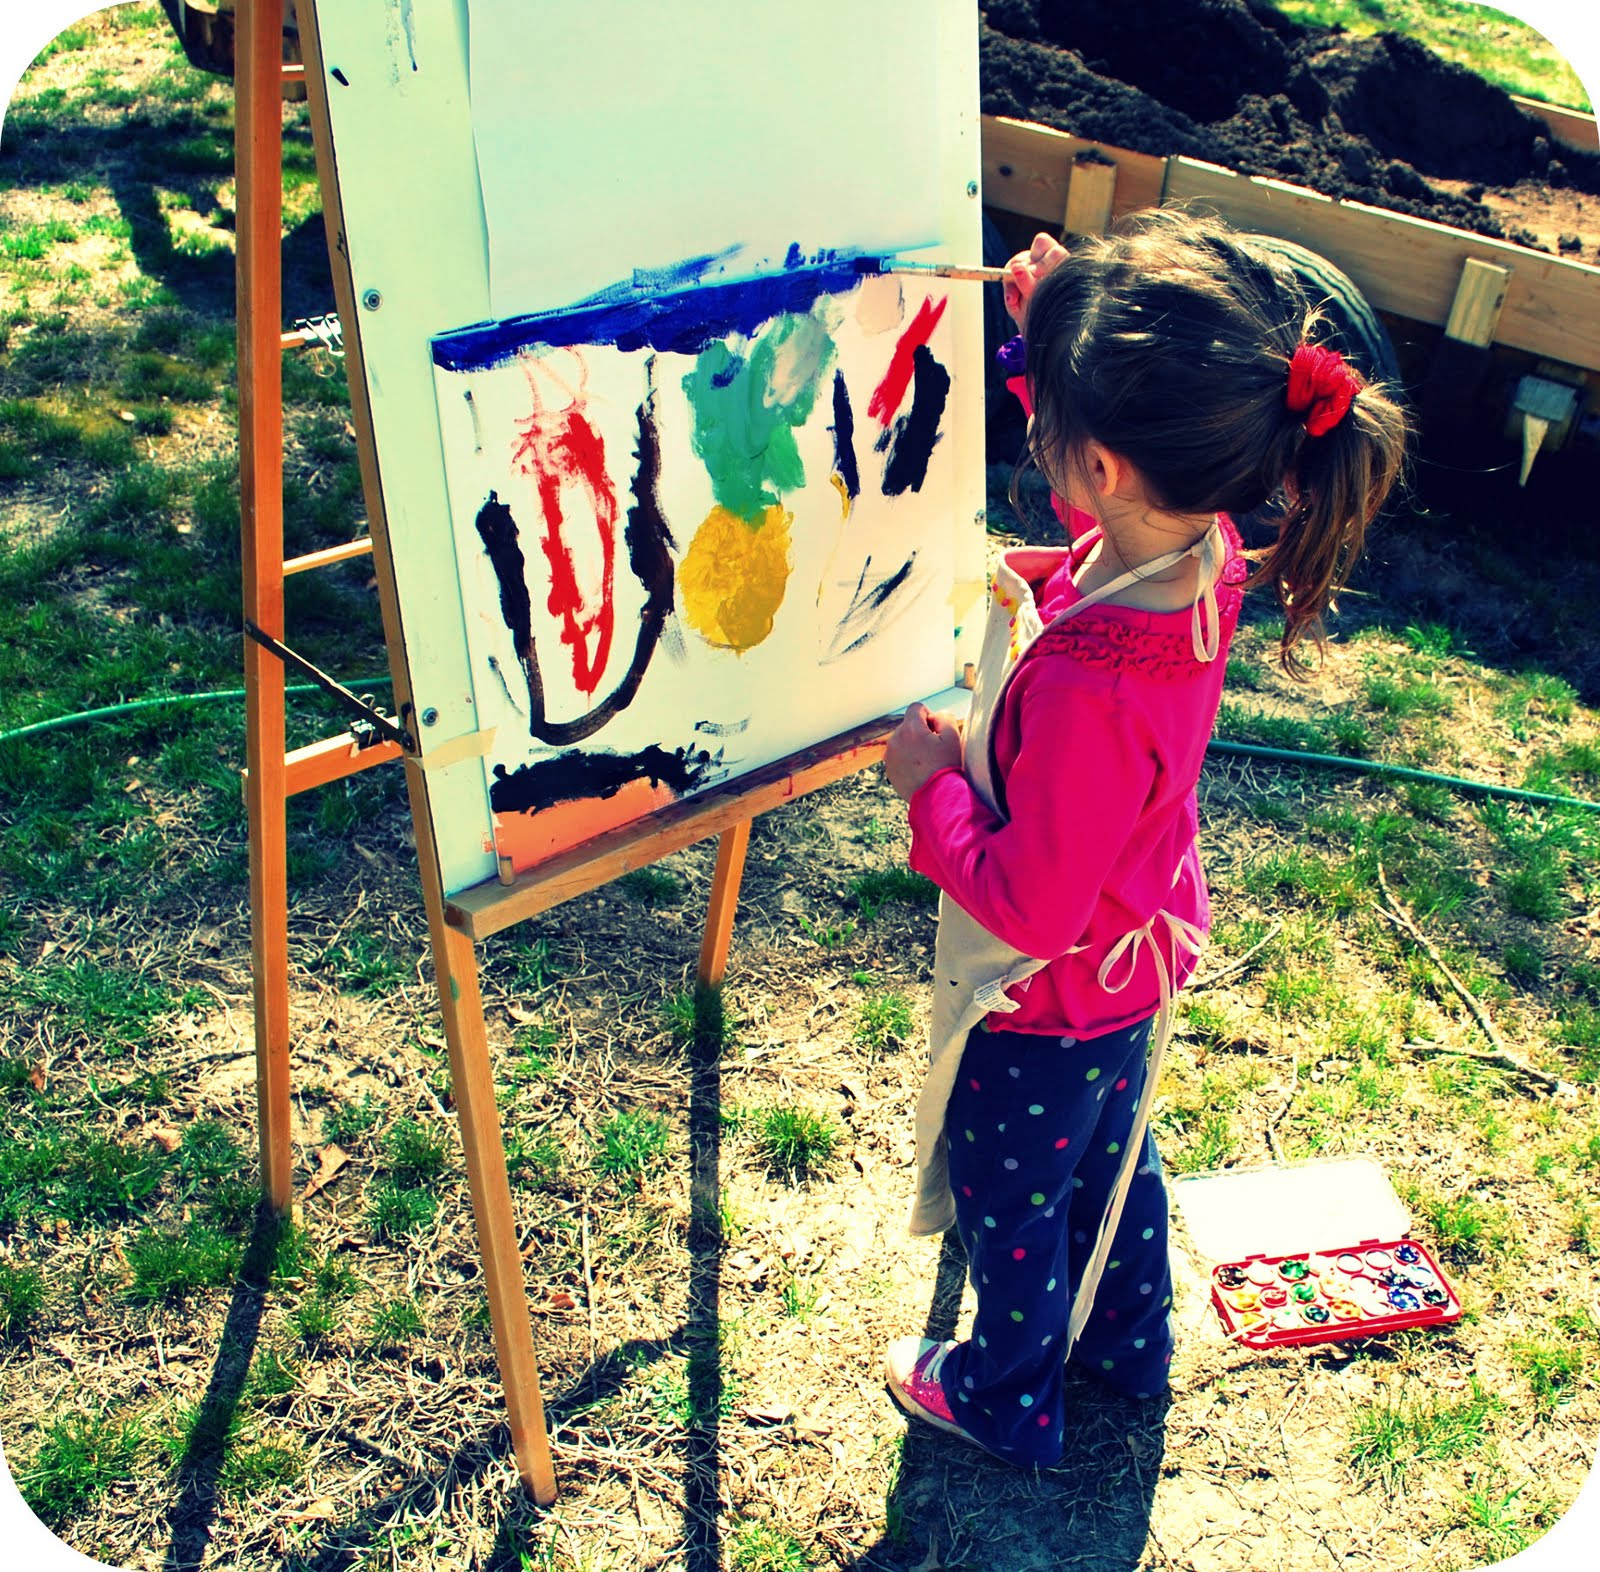 Jessica wood capps one artist and realtor 39 s dreams and daily happenings en plein air - The hideout in the woods an artists dream ...